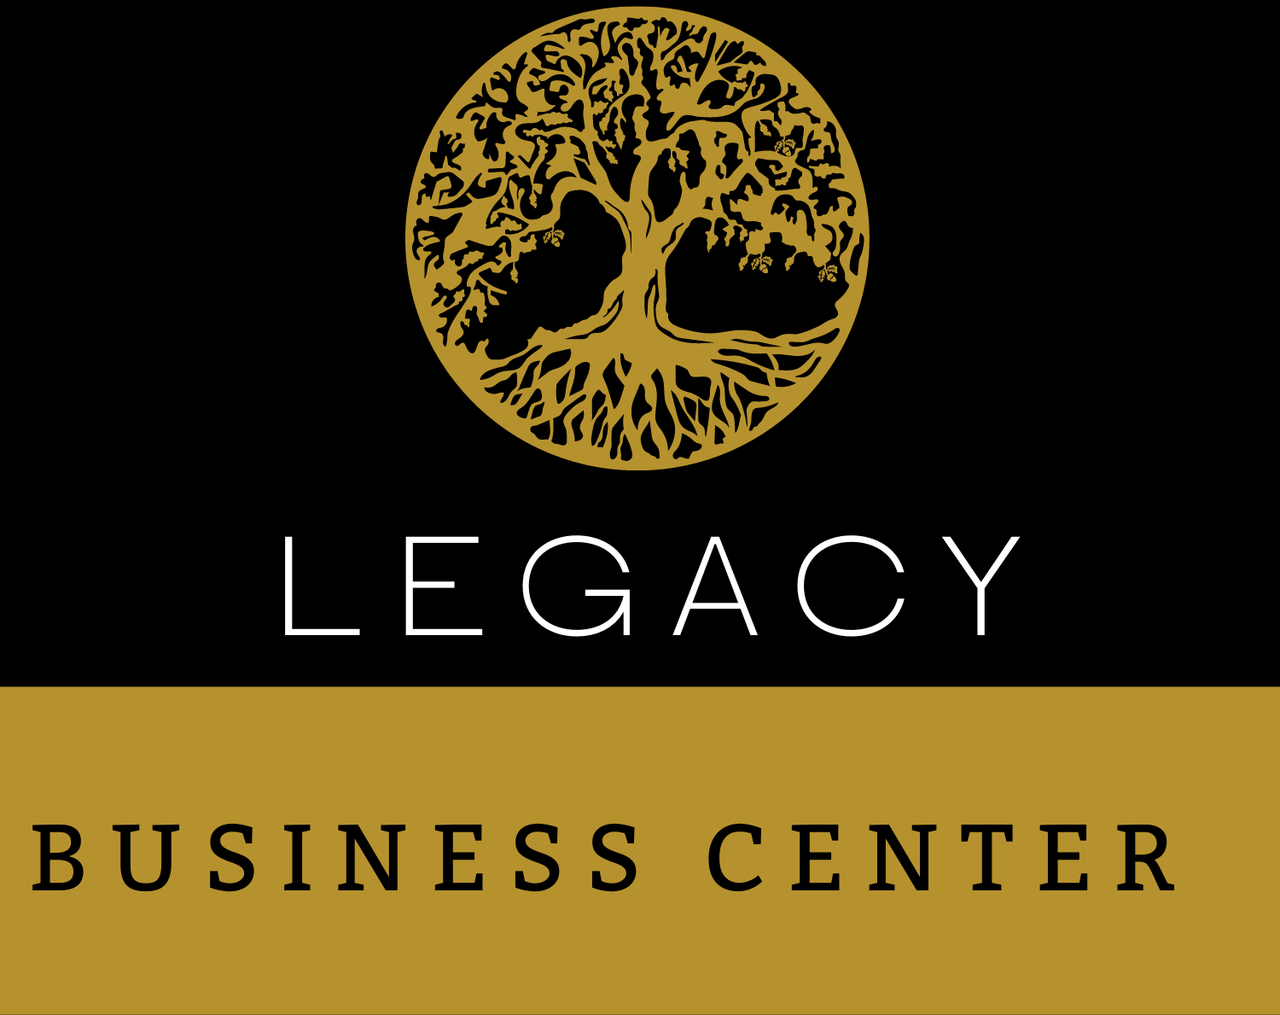 Legacy Business Center in Houma